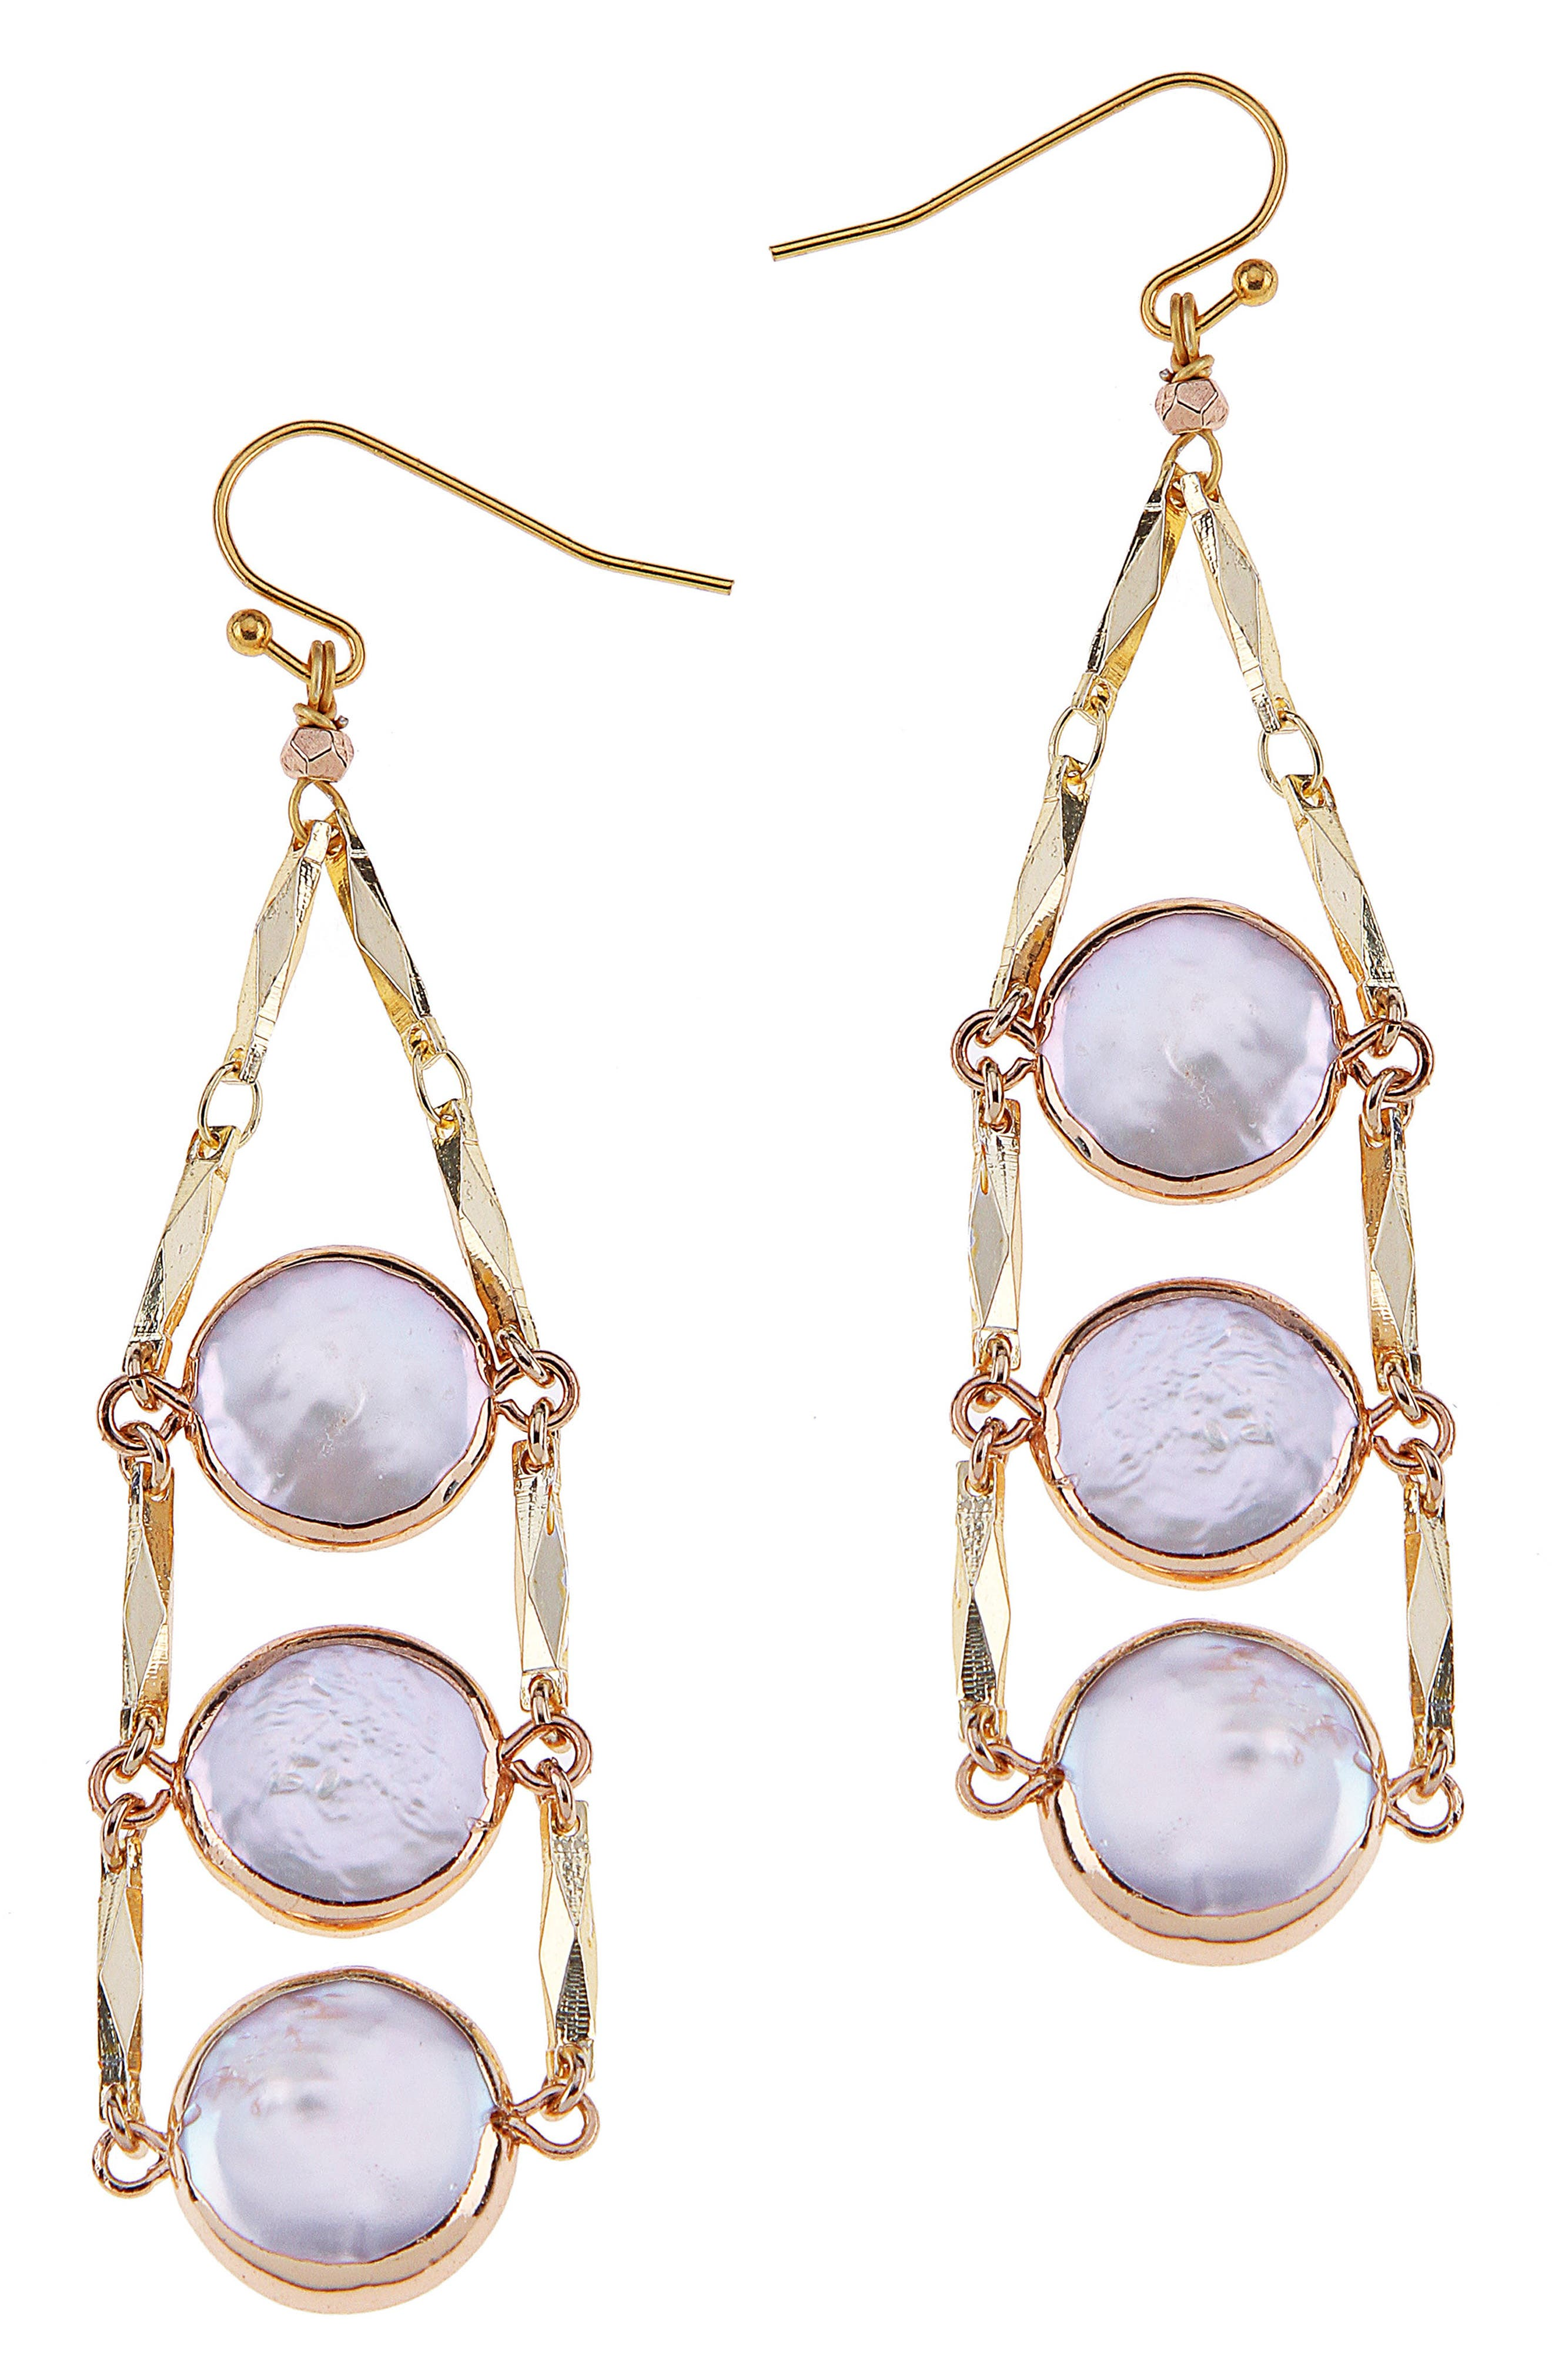 Triple Coin Freshwater Pearl Drop Earrings,                         Main,                         color,